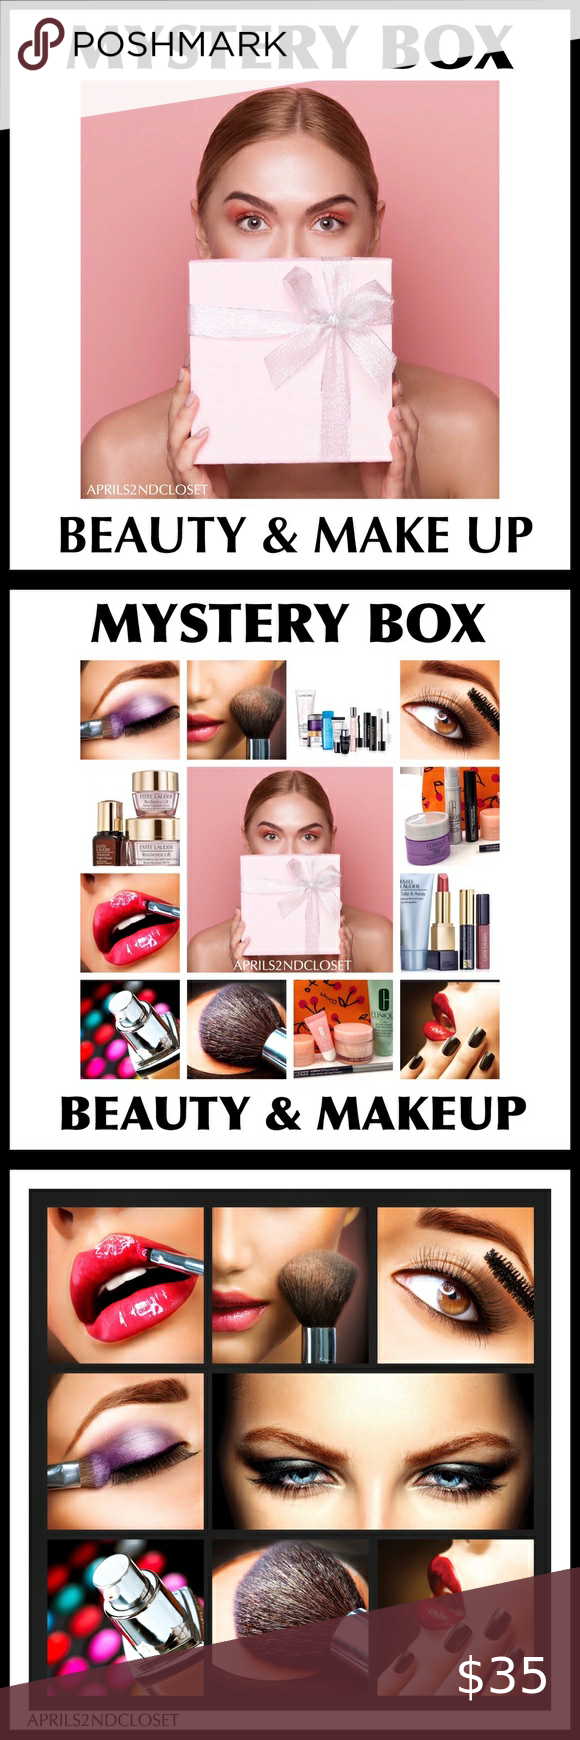 MYSTERY BOX MAKEUP BEAUTY AND SKINCARE A3C in 2020